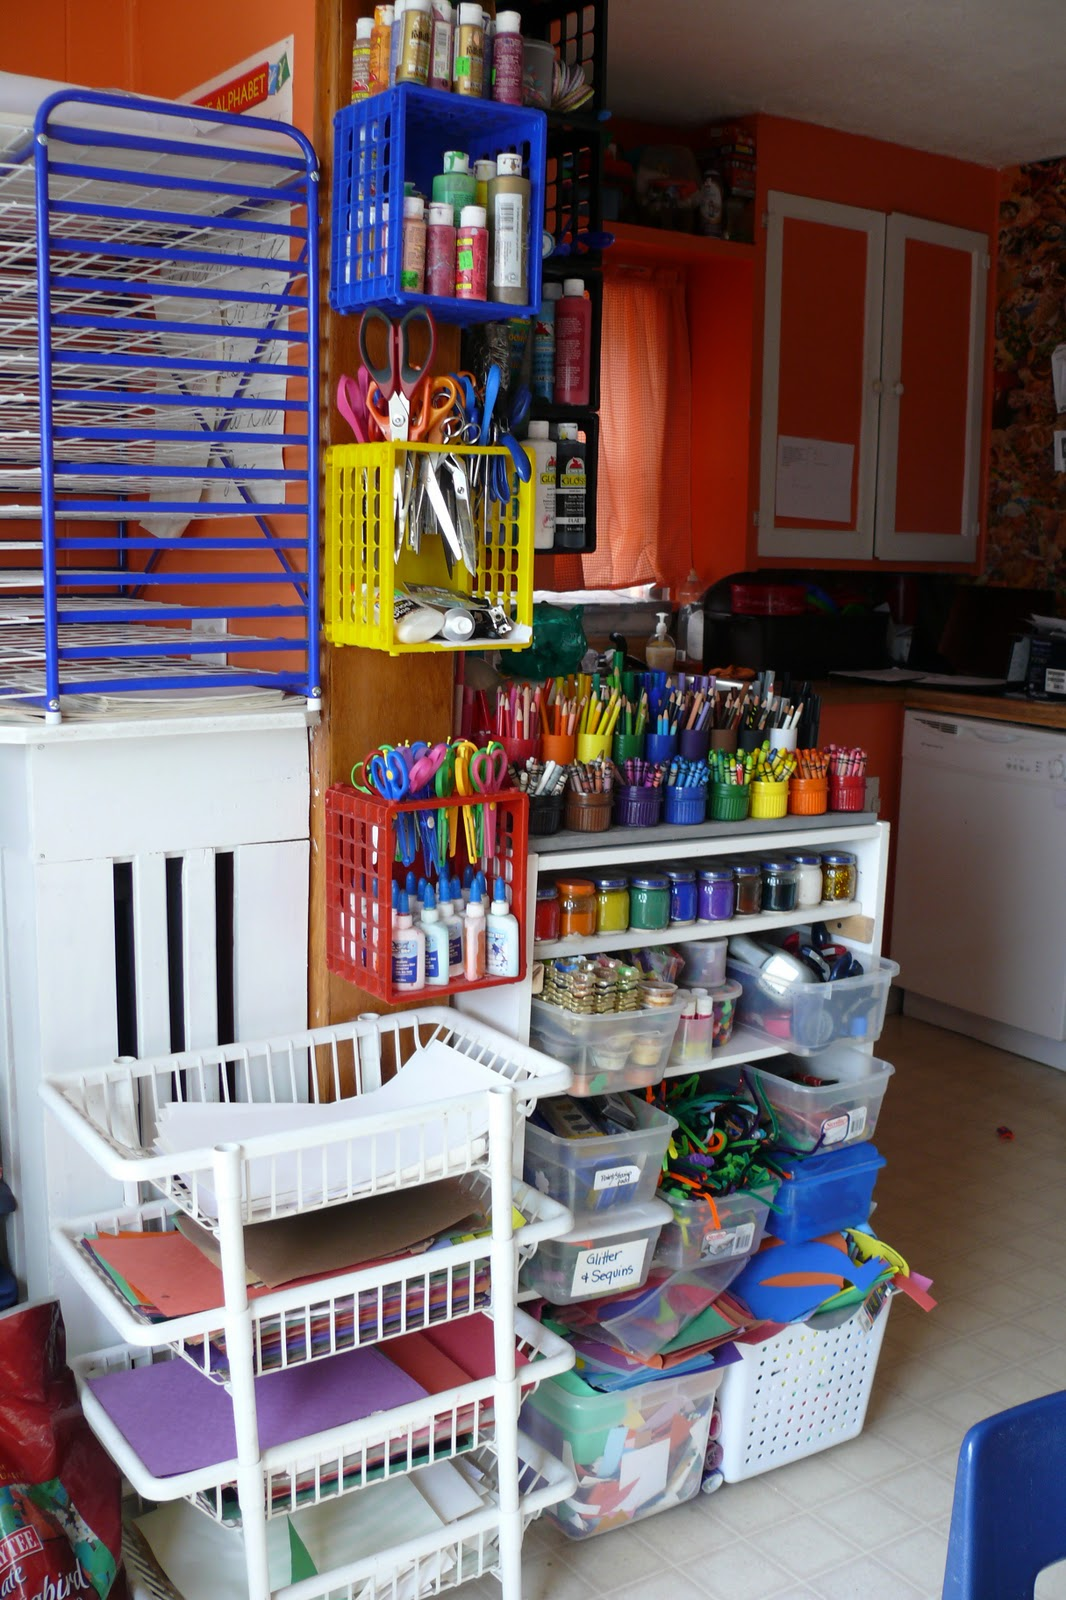 Childrens arts and crafts supplies - We Also Have A Couple Of Shelves With Other Arts And Crafts Supplies And Closet Filled With More Stuff And No I Won T Be Showing Any Photos Any Time Soon